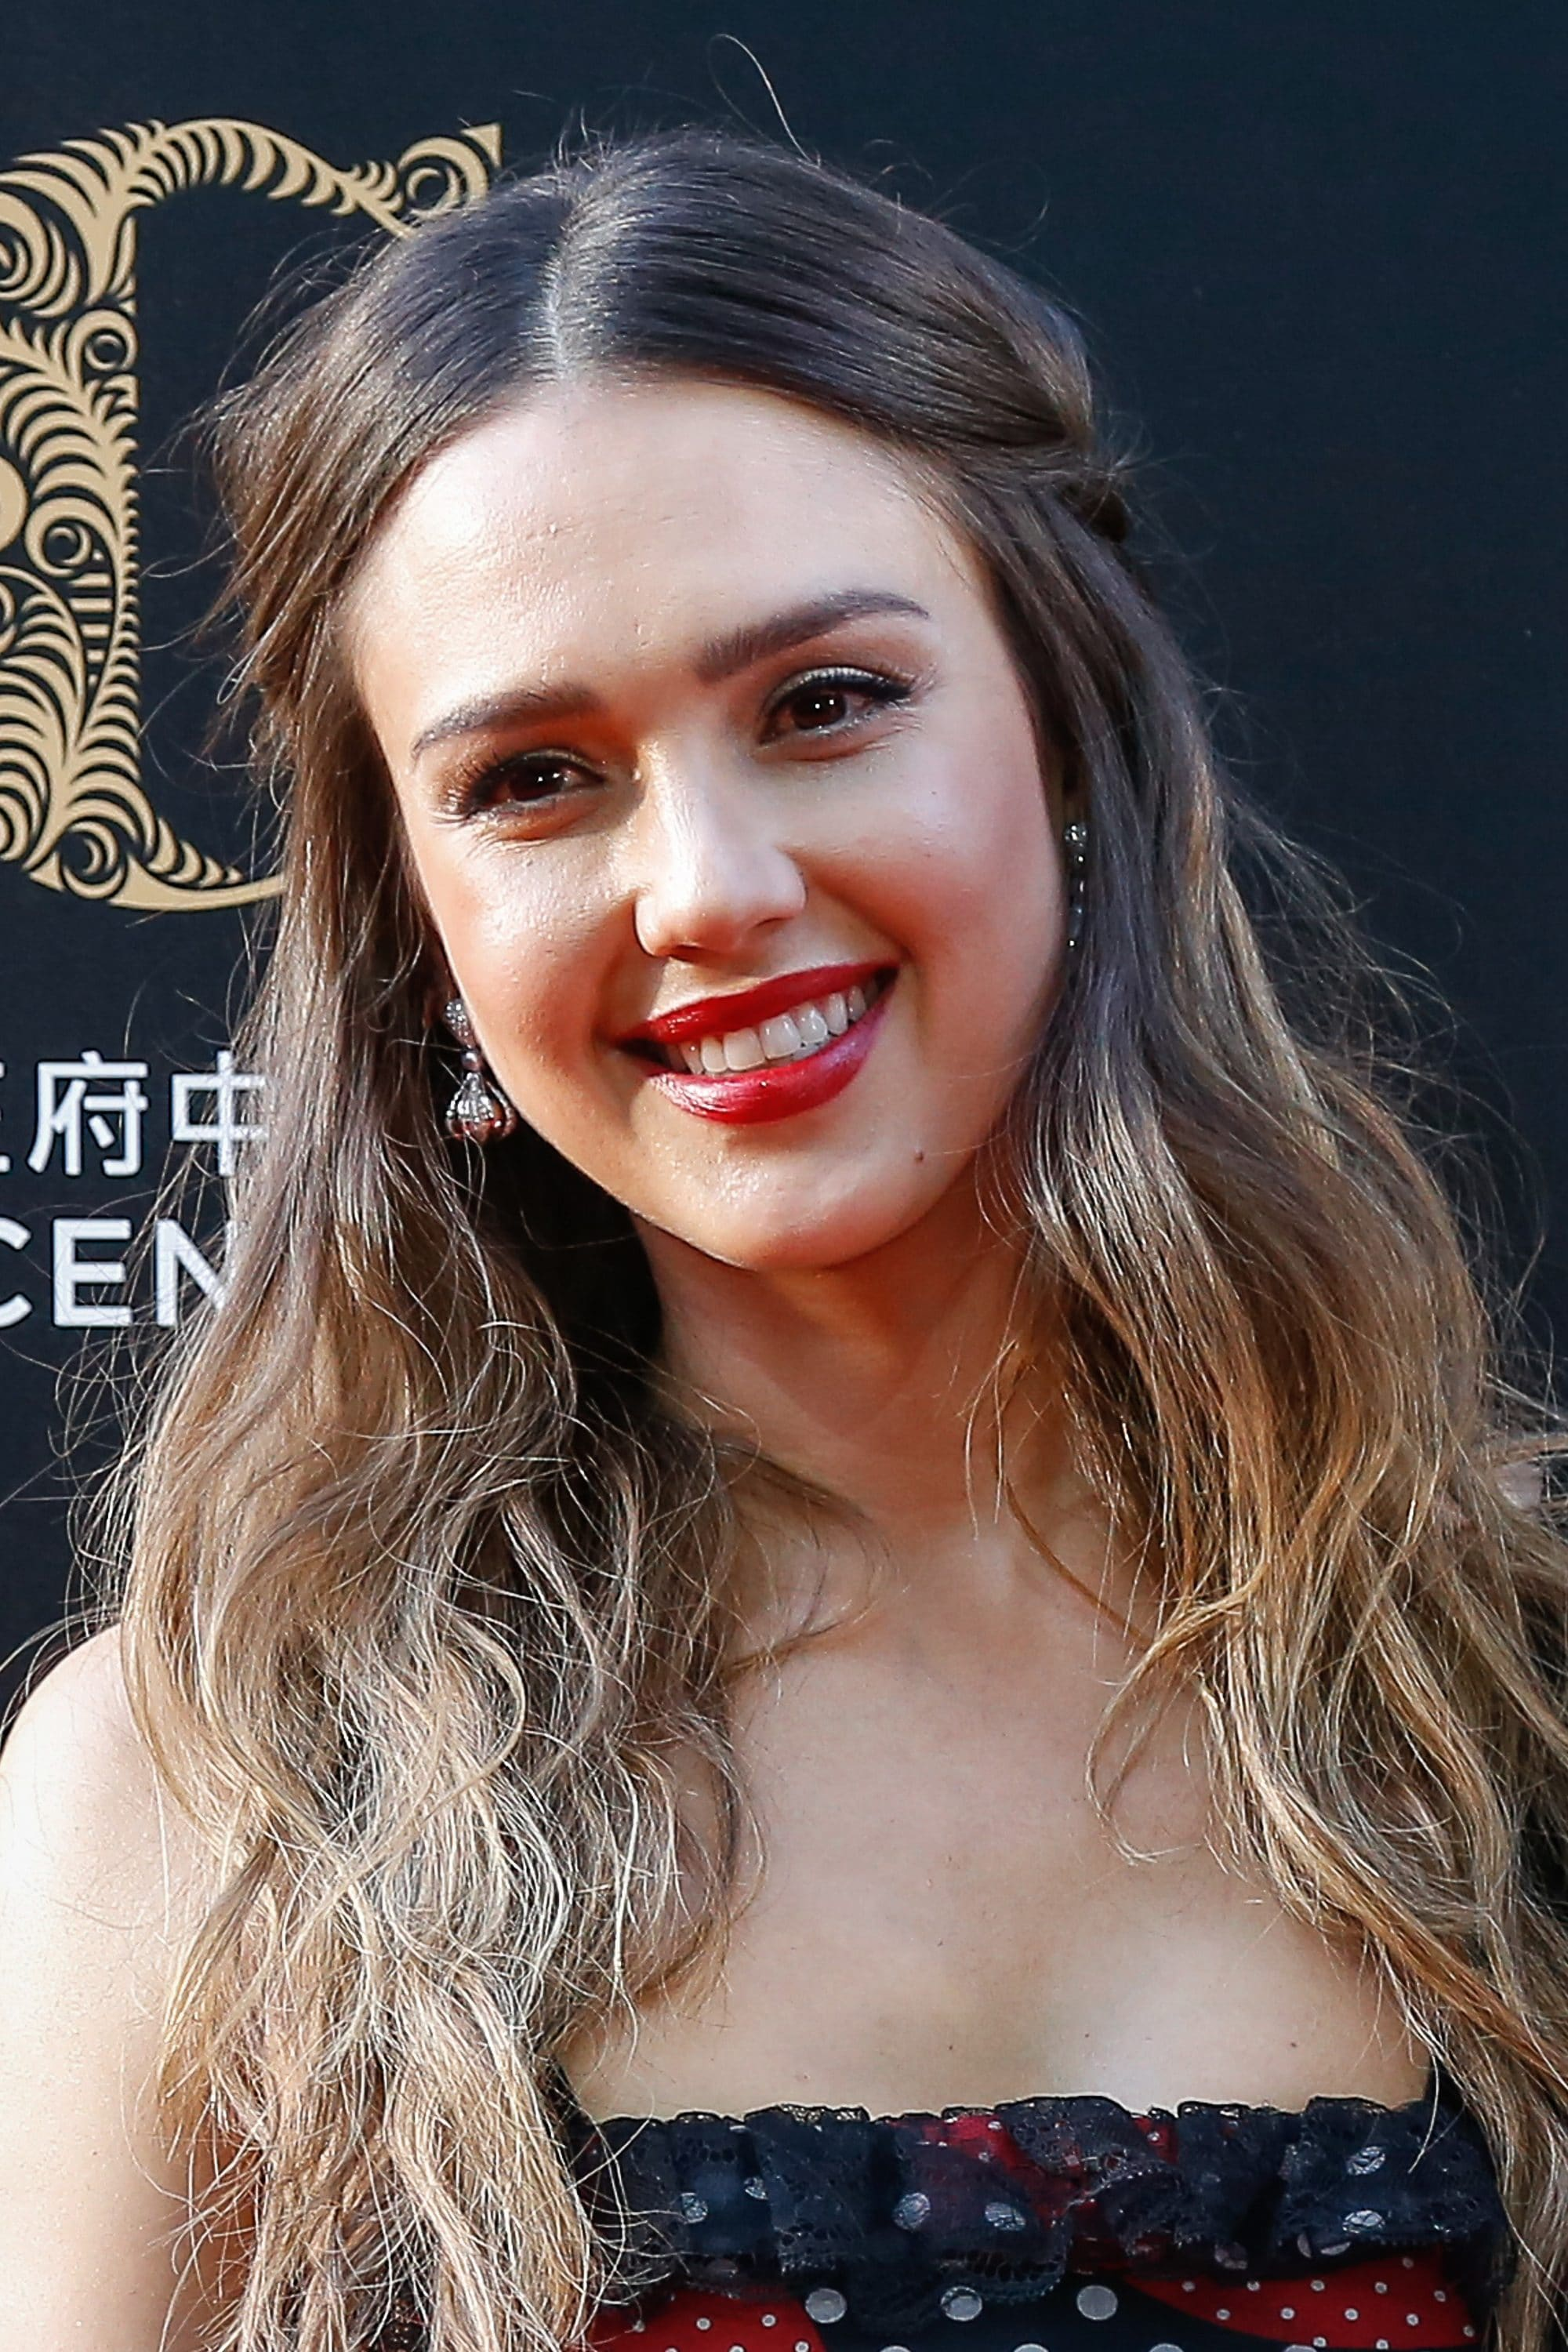 Brown hair with blonde highlights: Jessica Alba with dark brown and blonde highlighted hair, styled in a curly half-up half-down hairstyle